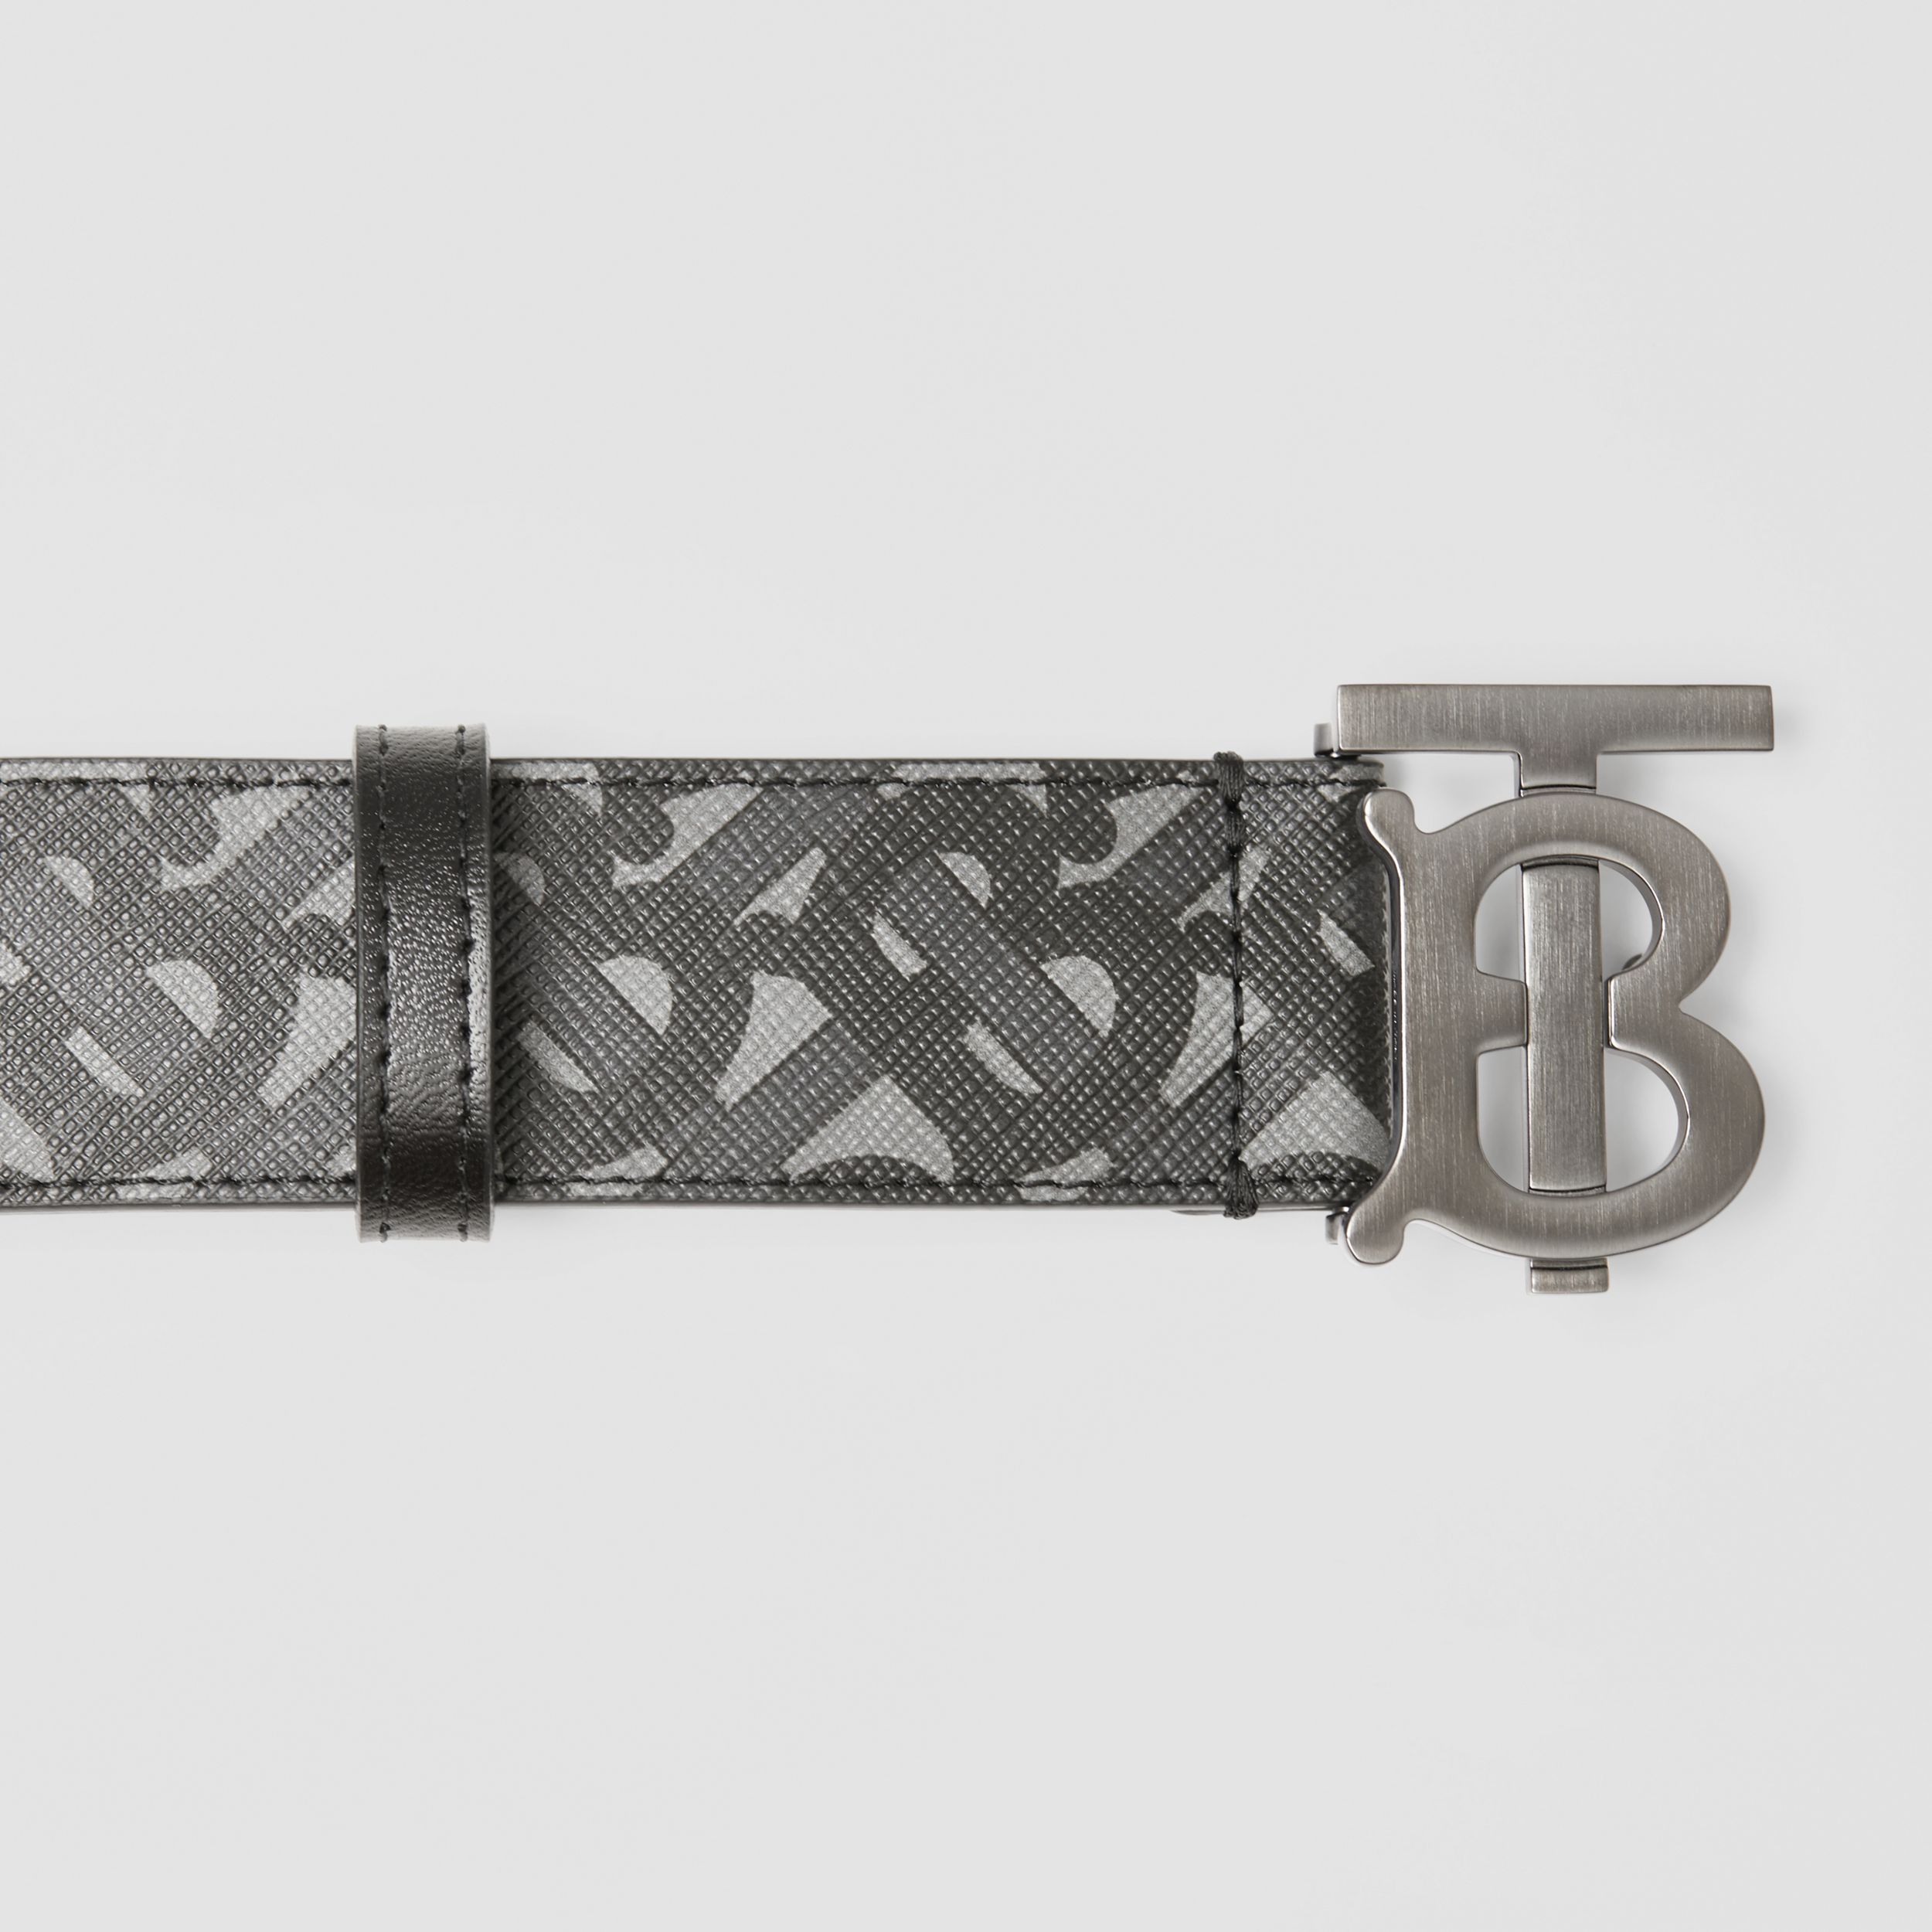 Monogram E-canvas and Leather Belt in Charcoal/black/dark Graphite - Men | Burberry - 2